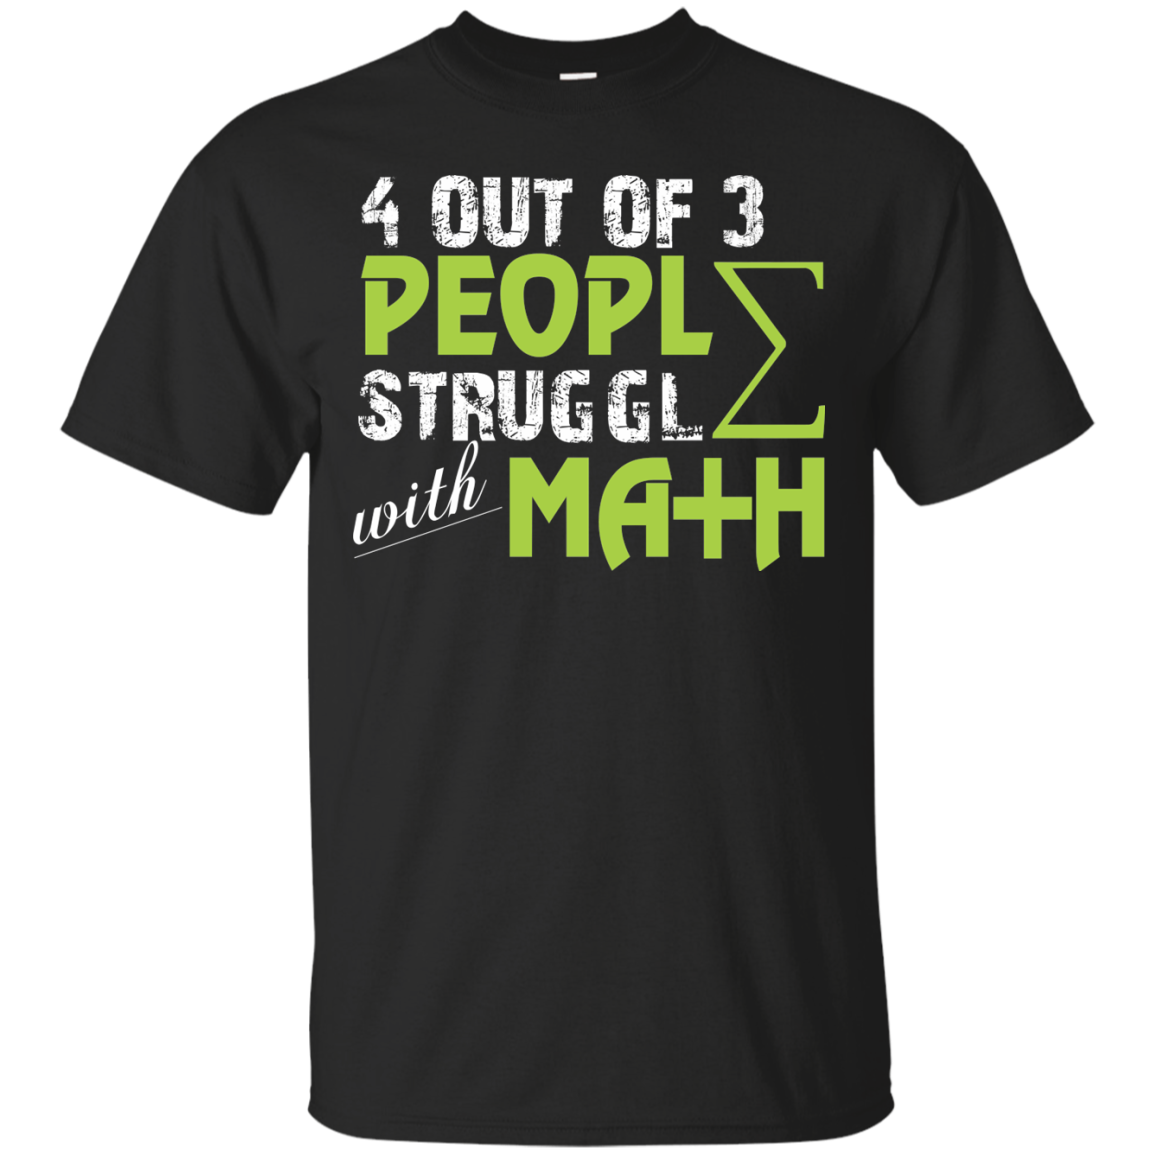 4 Out Of 3 People Struggle With Math T Shirt Amp Hoo